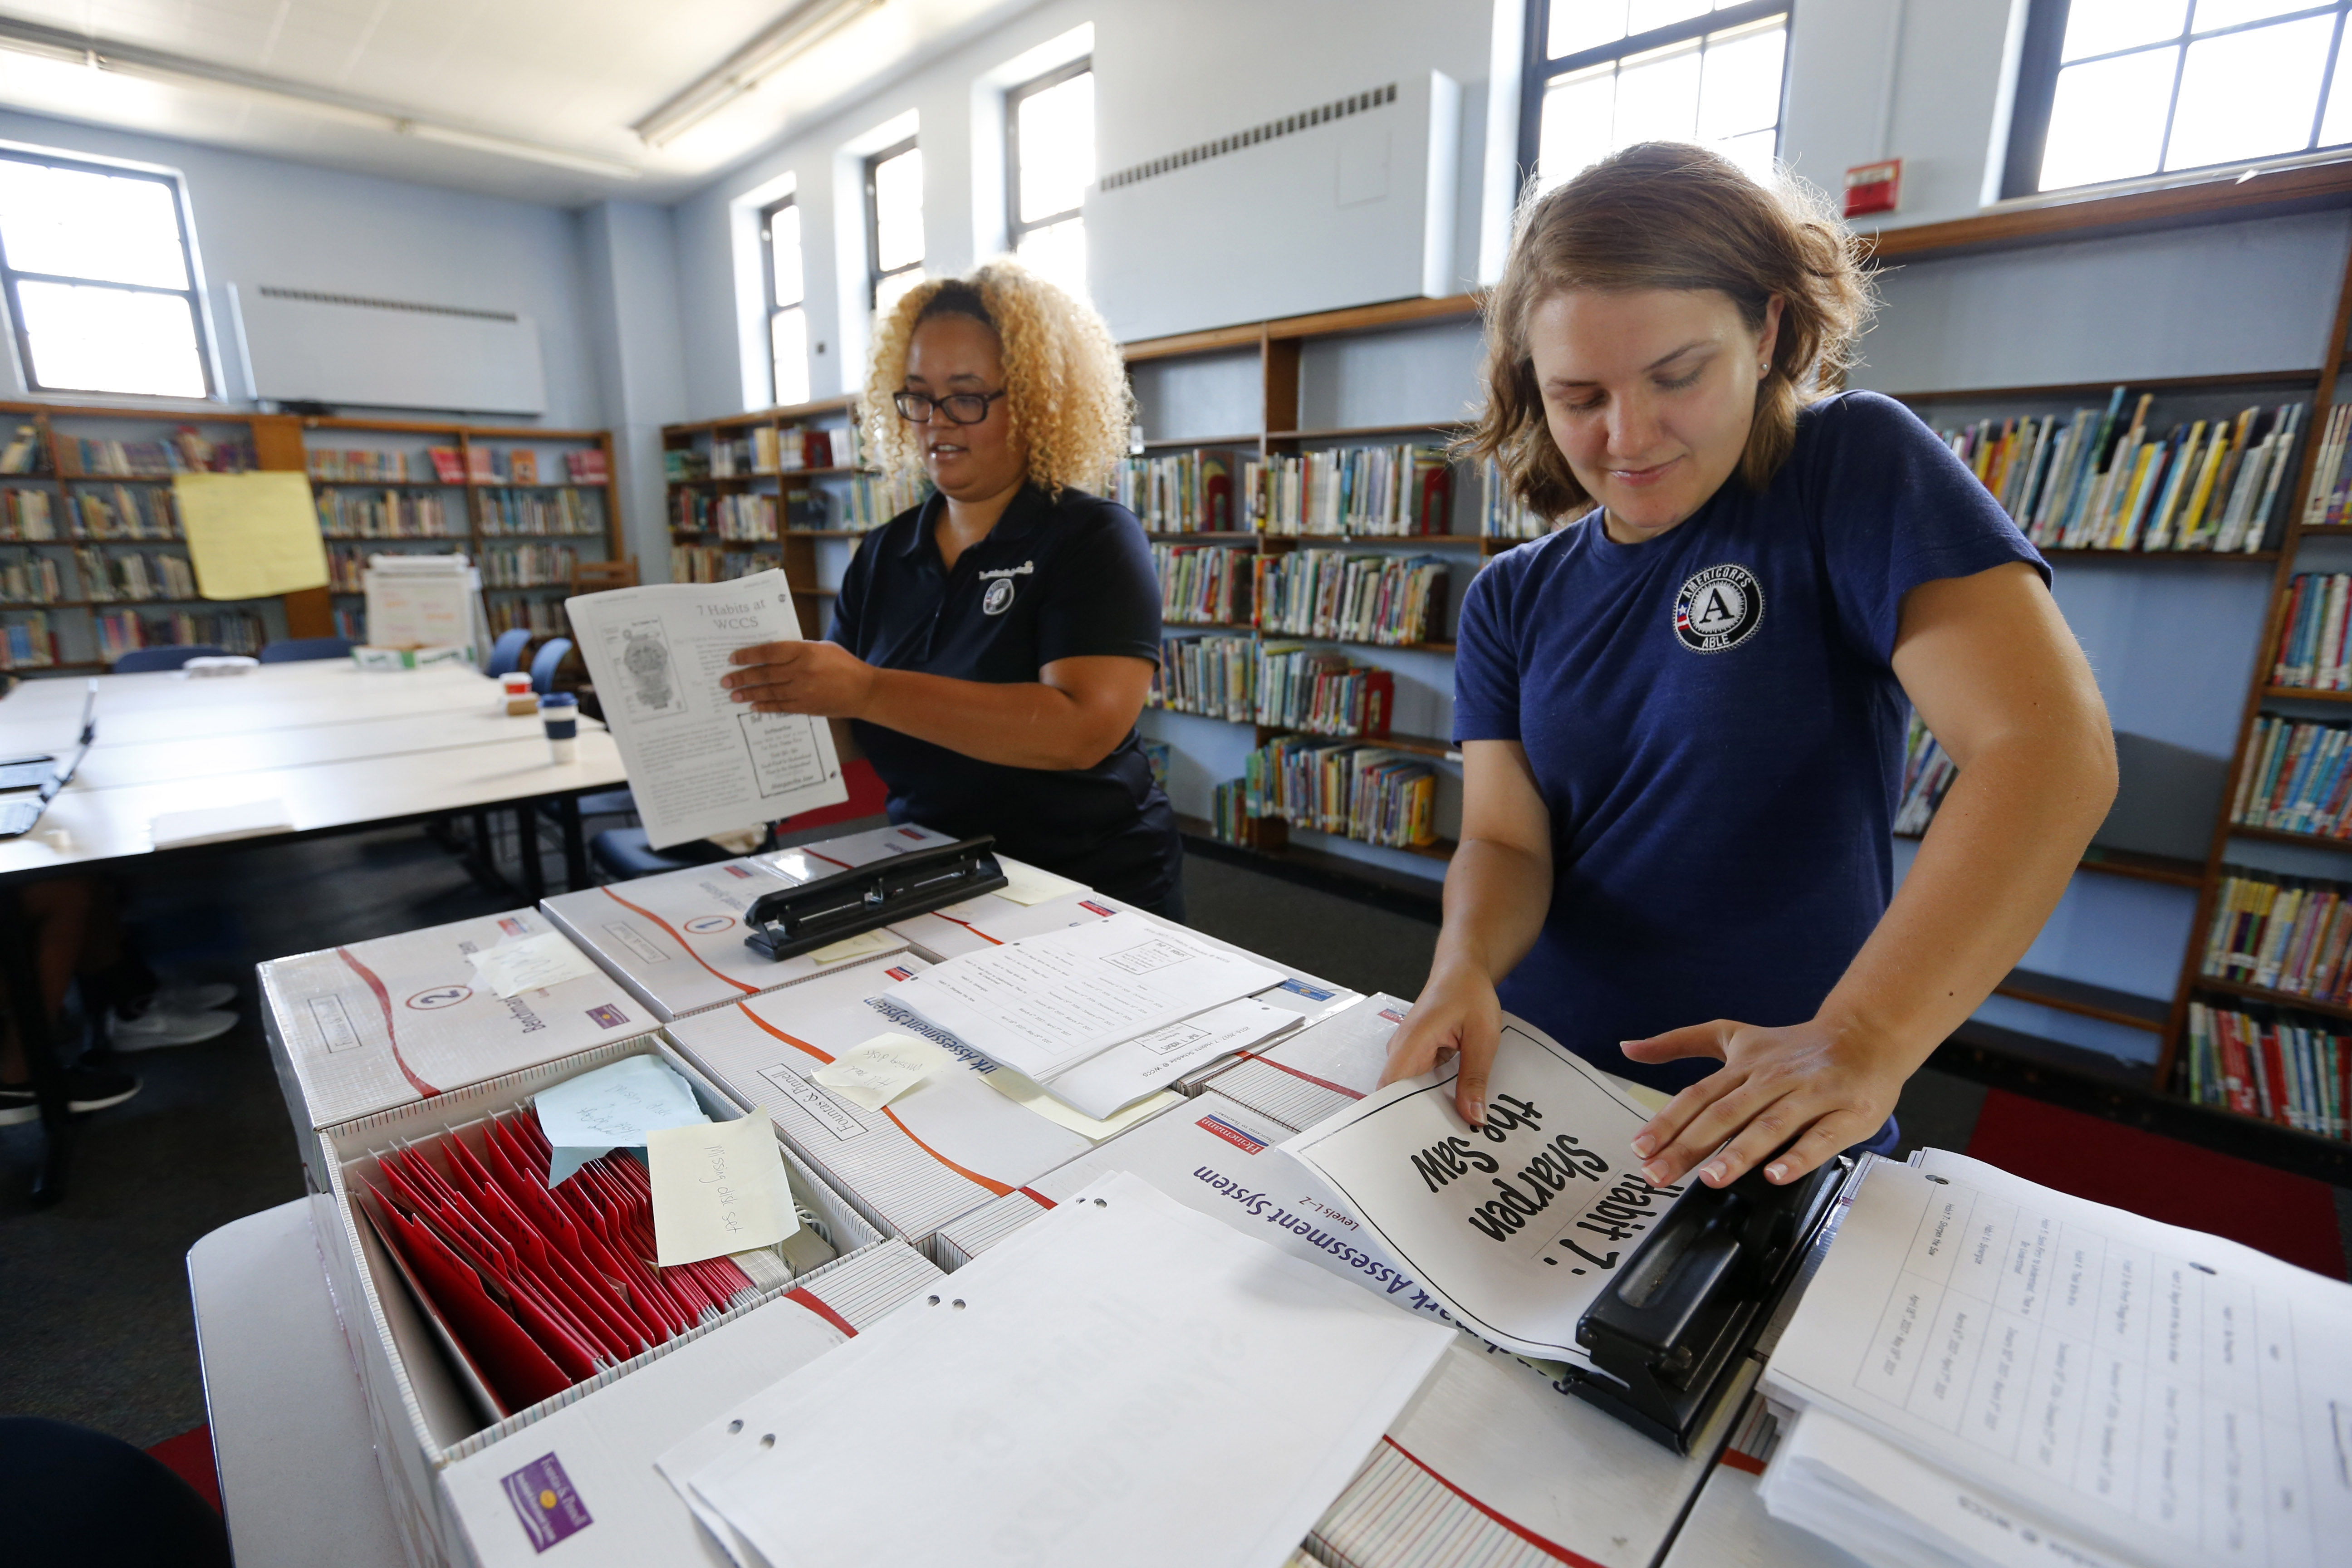 AmeriCorps members Jemaris Ellis, left, and Alyssa Kocher, right, punch holes into papers for binders for the upcoming school year at Westminster Charter School in Buffalo on Friday, August 19, 2016. (Mark Mulville/Buffalo News)